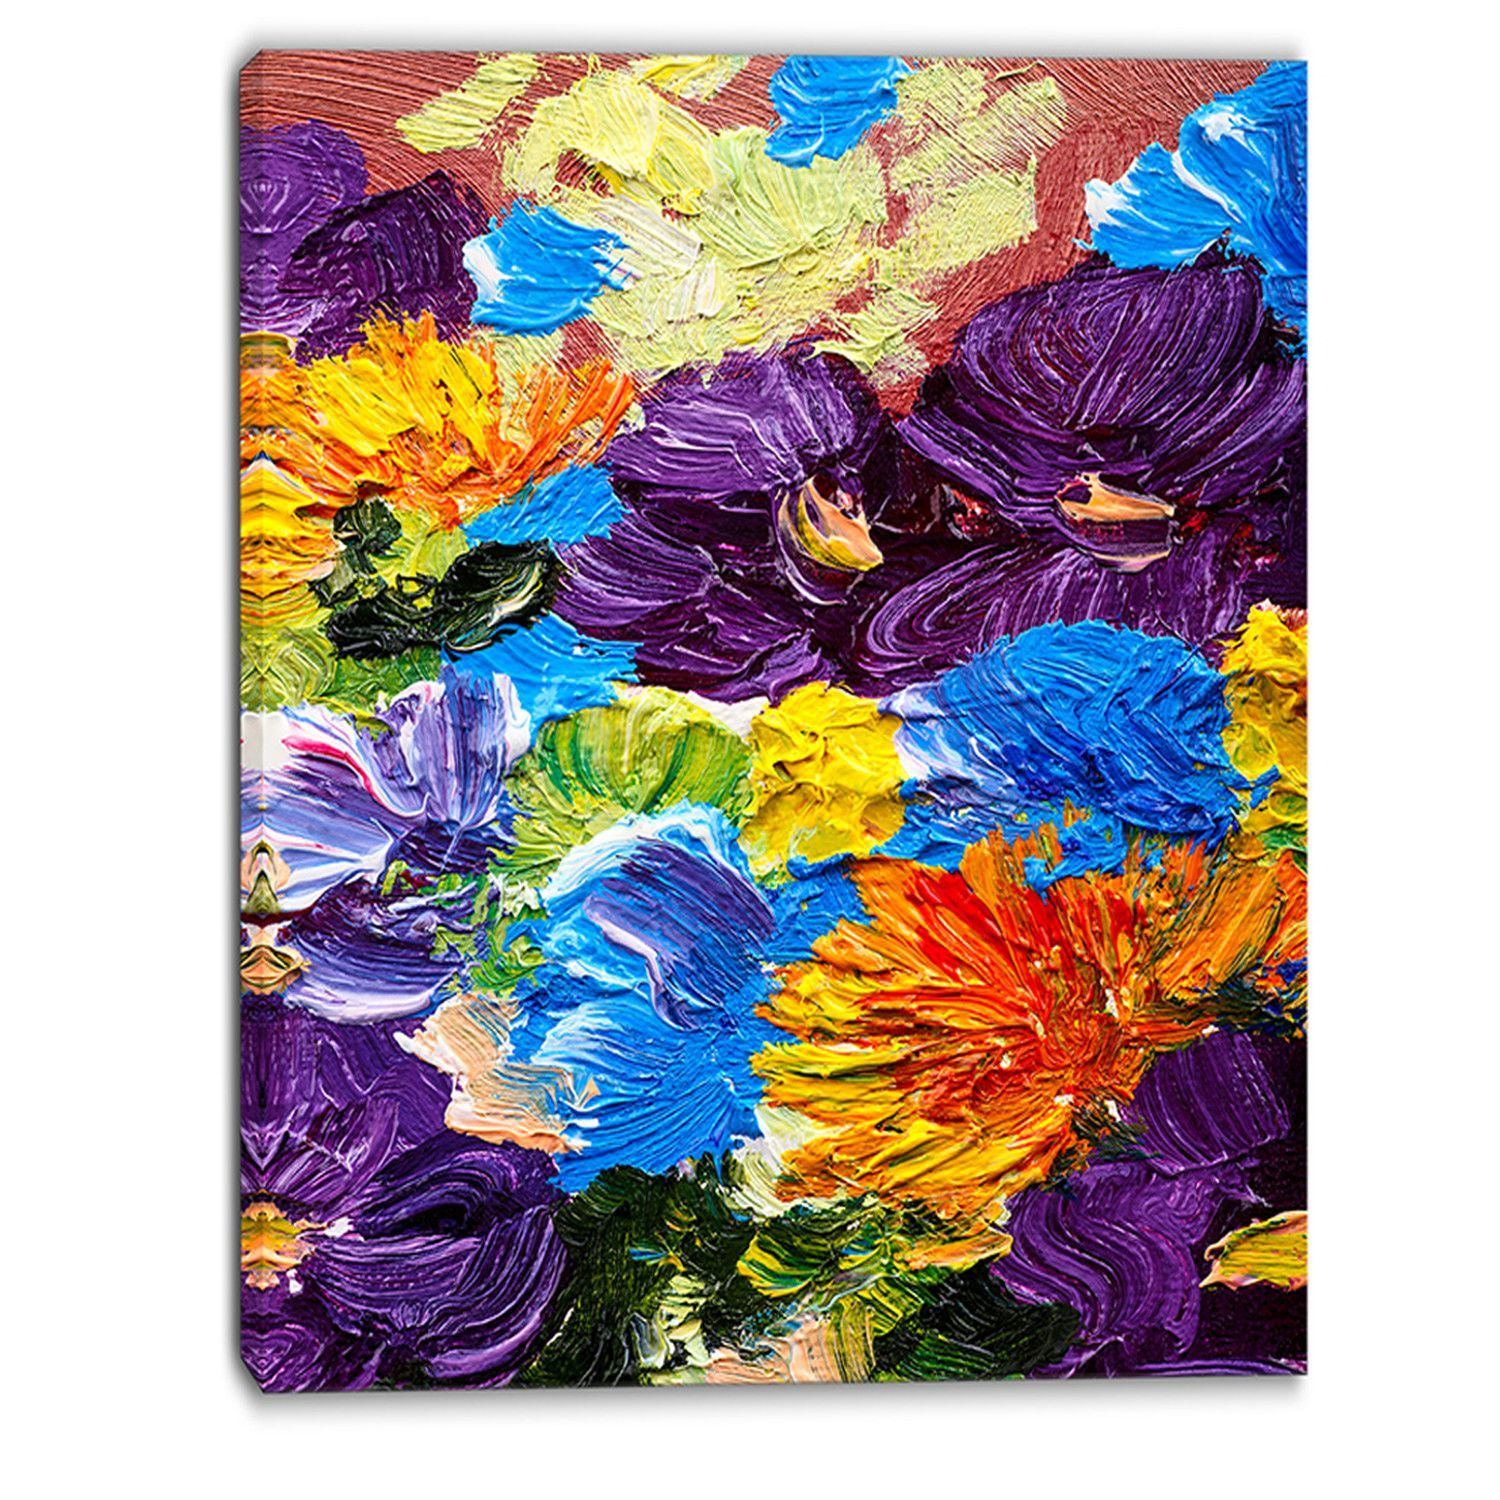 Heavily Textured Abstract Flowers Abstract Painting Print On Wrapped Canvas